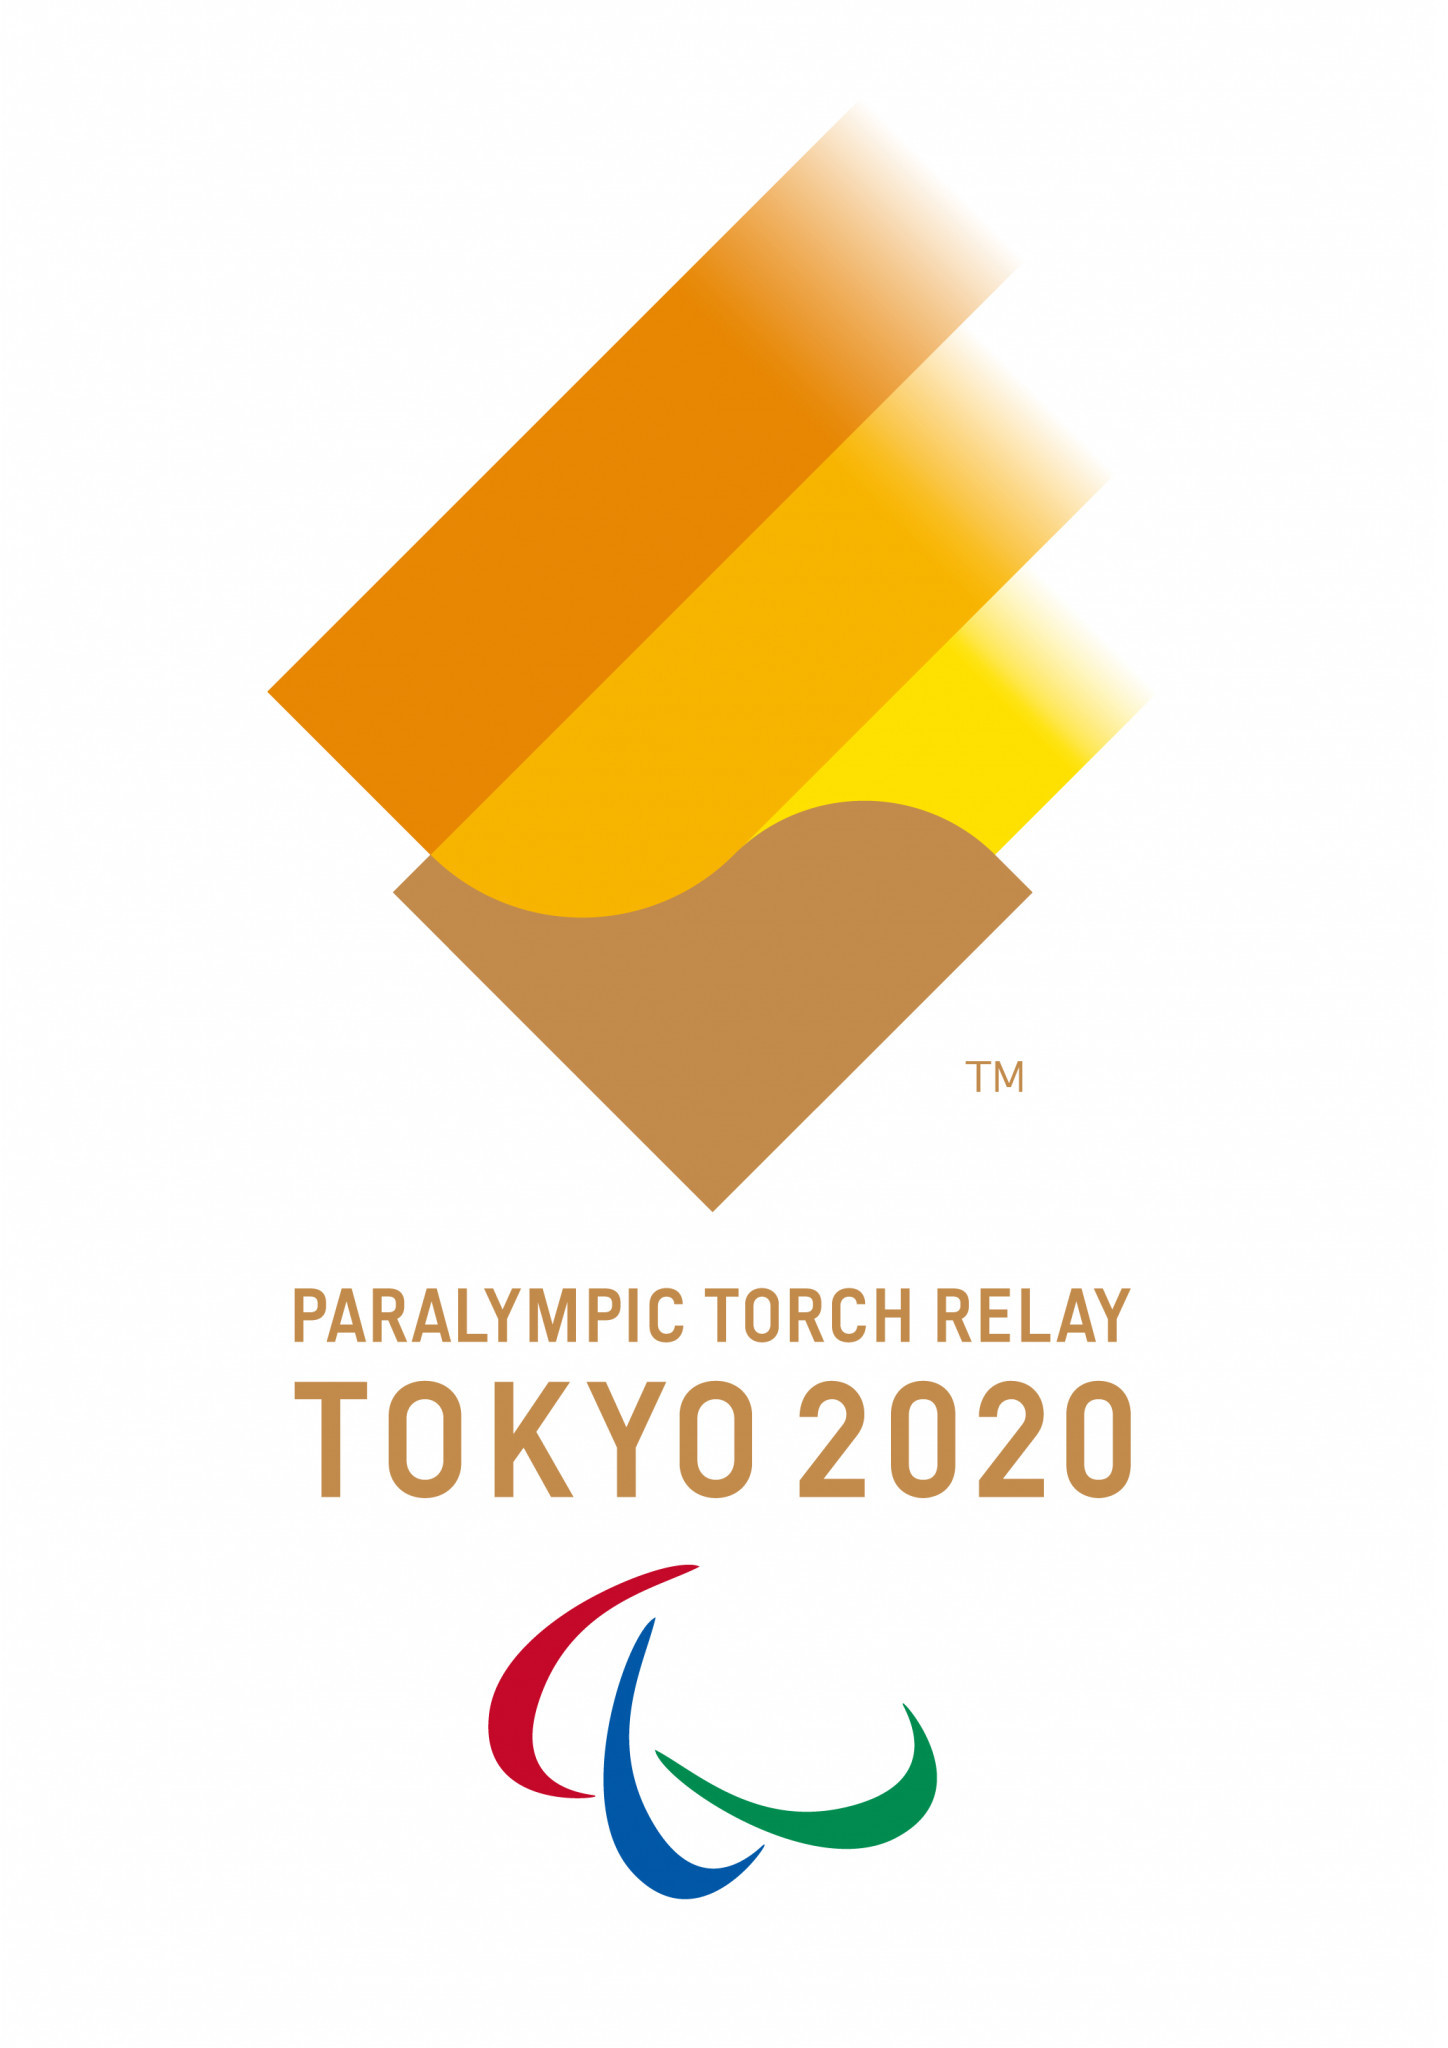 Tokyo 2020 reveals Paralympic Torch Relay details